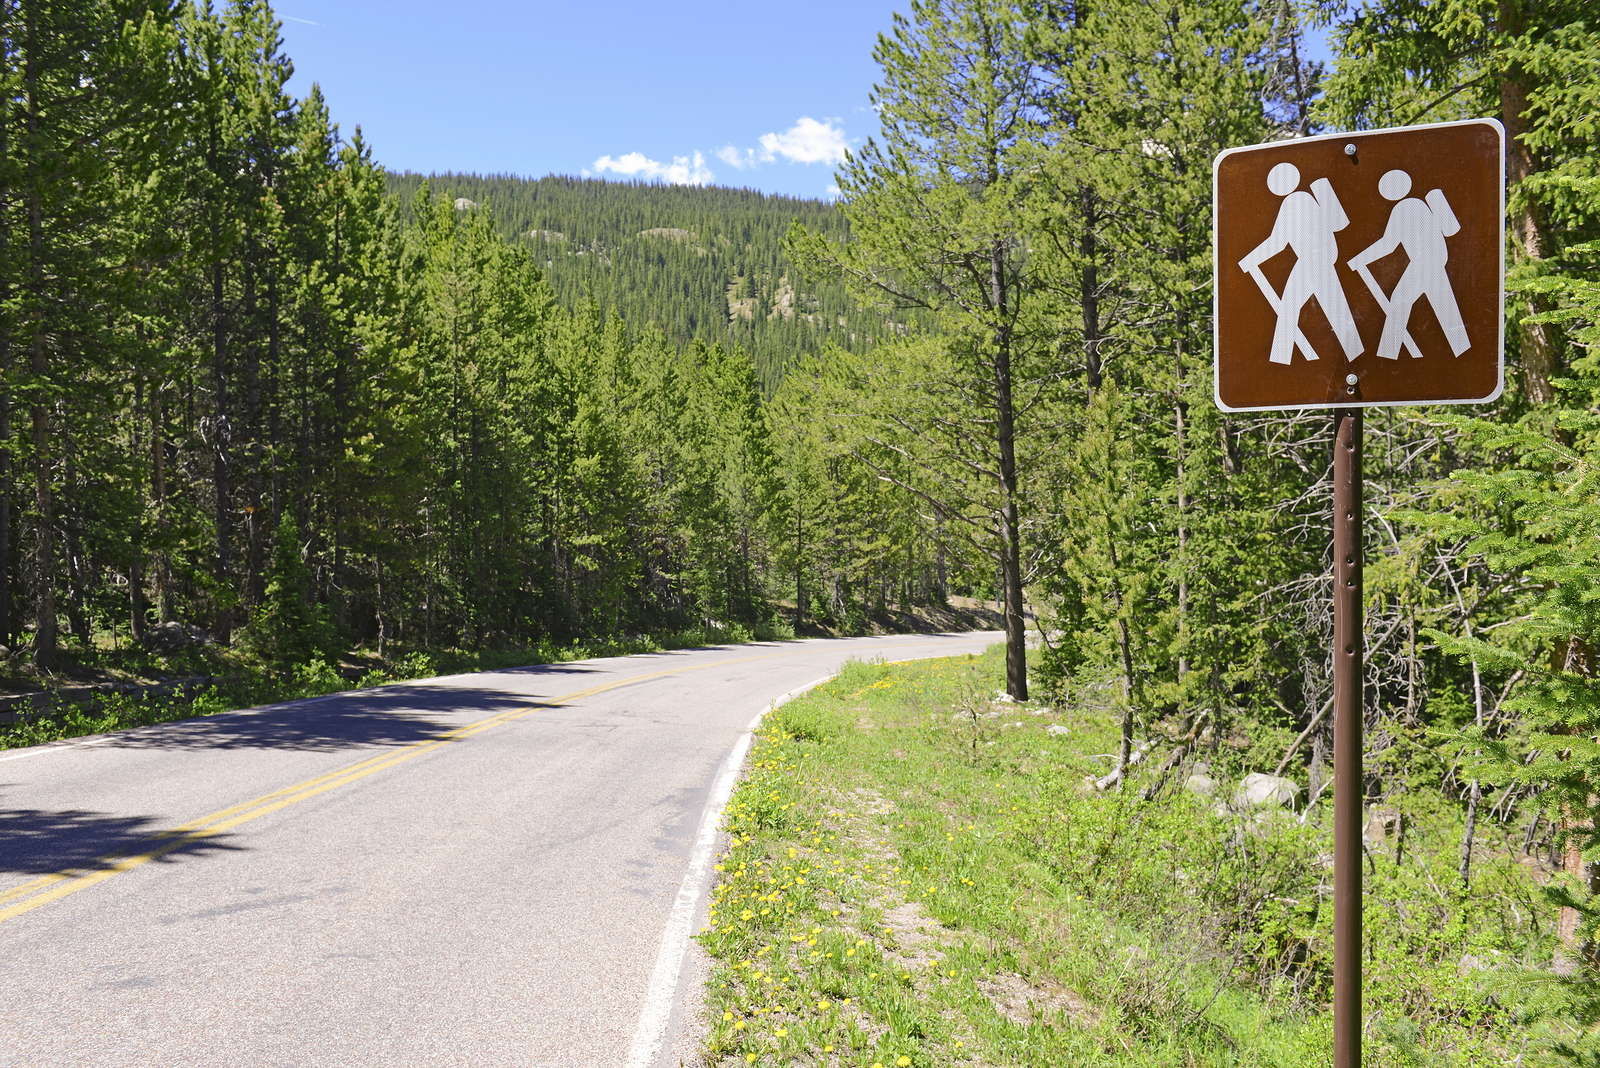 Hiker - backpacker Crossing sign in the outdoors